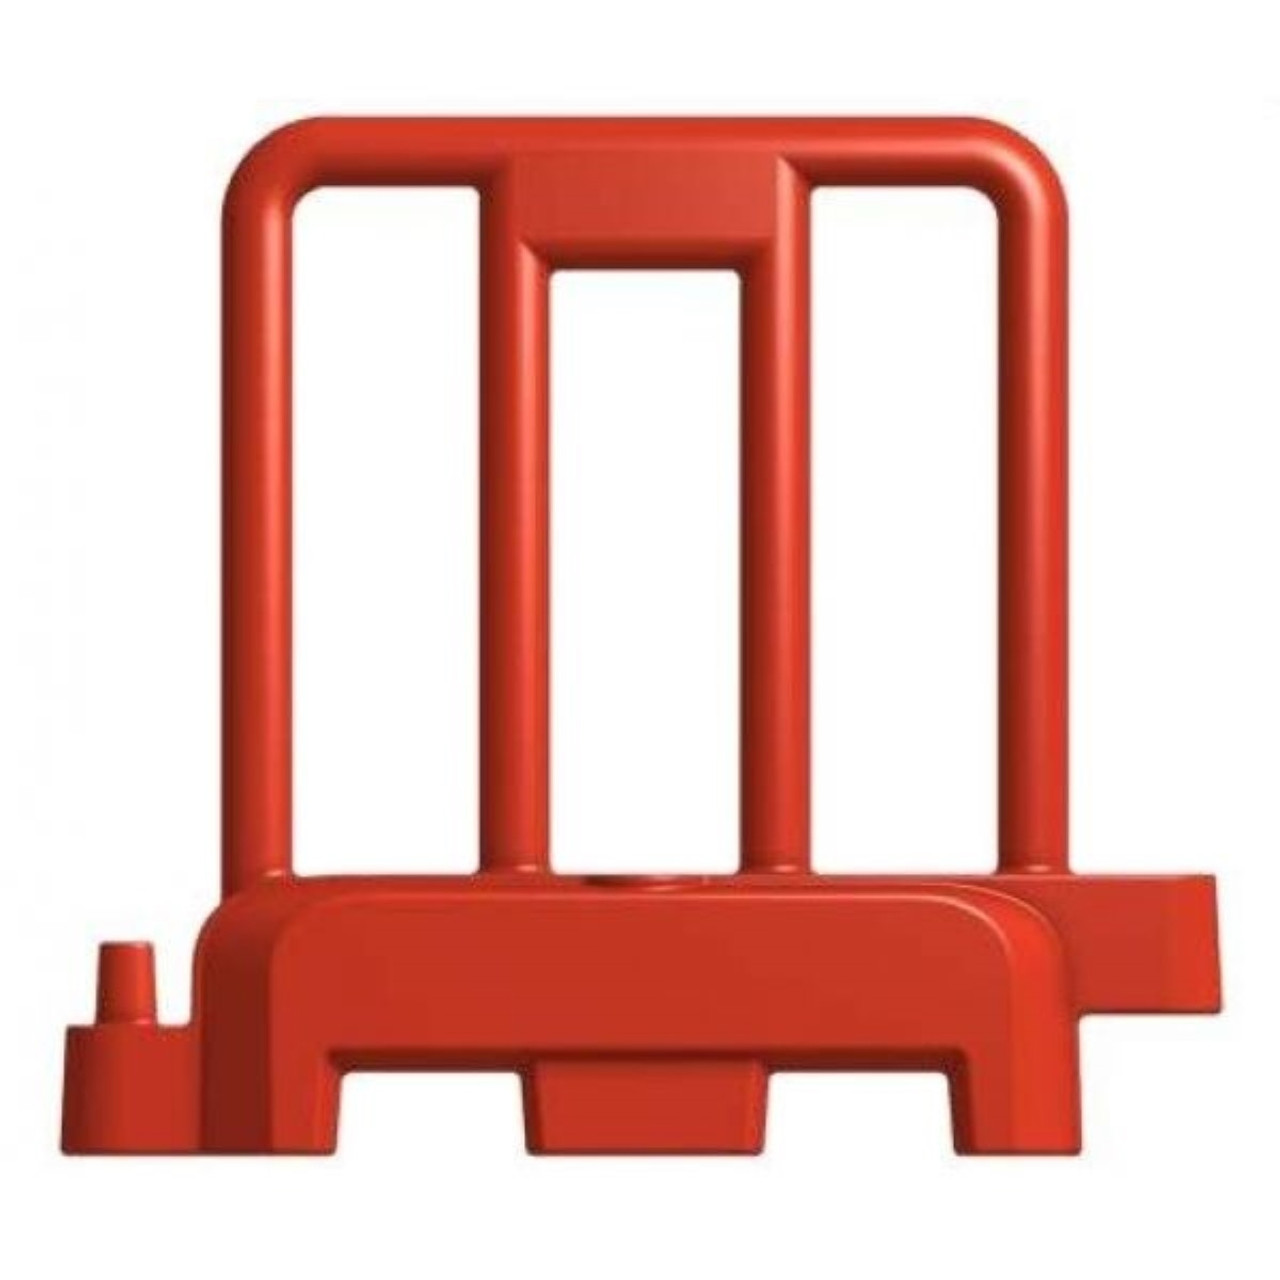 Personnel 1 meter water filled public safety barrier red